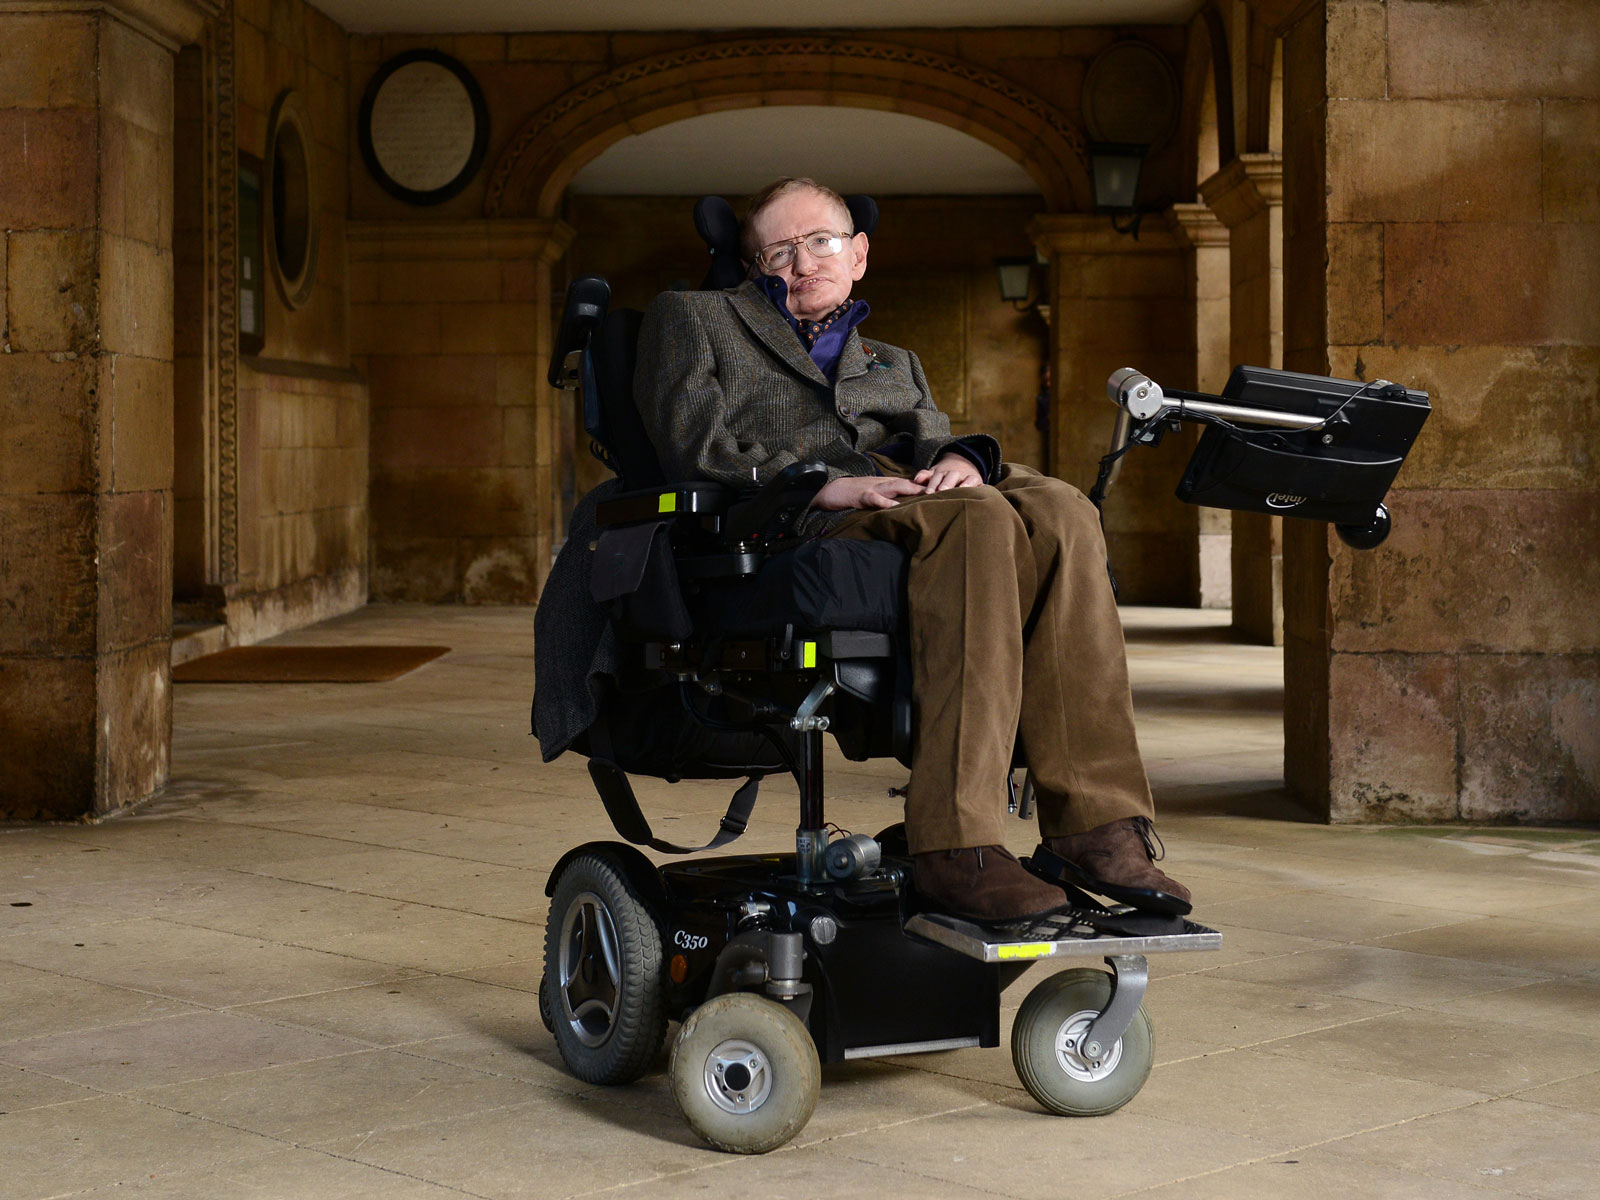 Stephen Hawking's parting Easter gift for the homeless